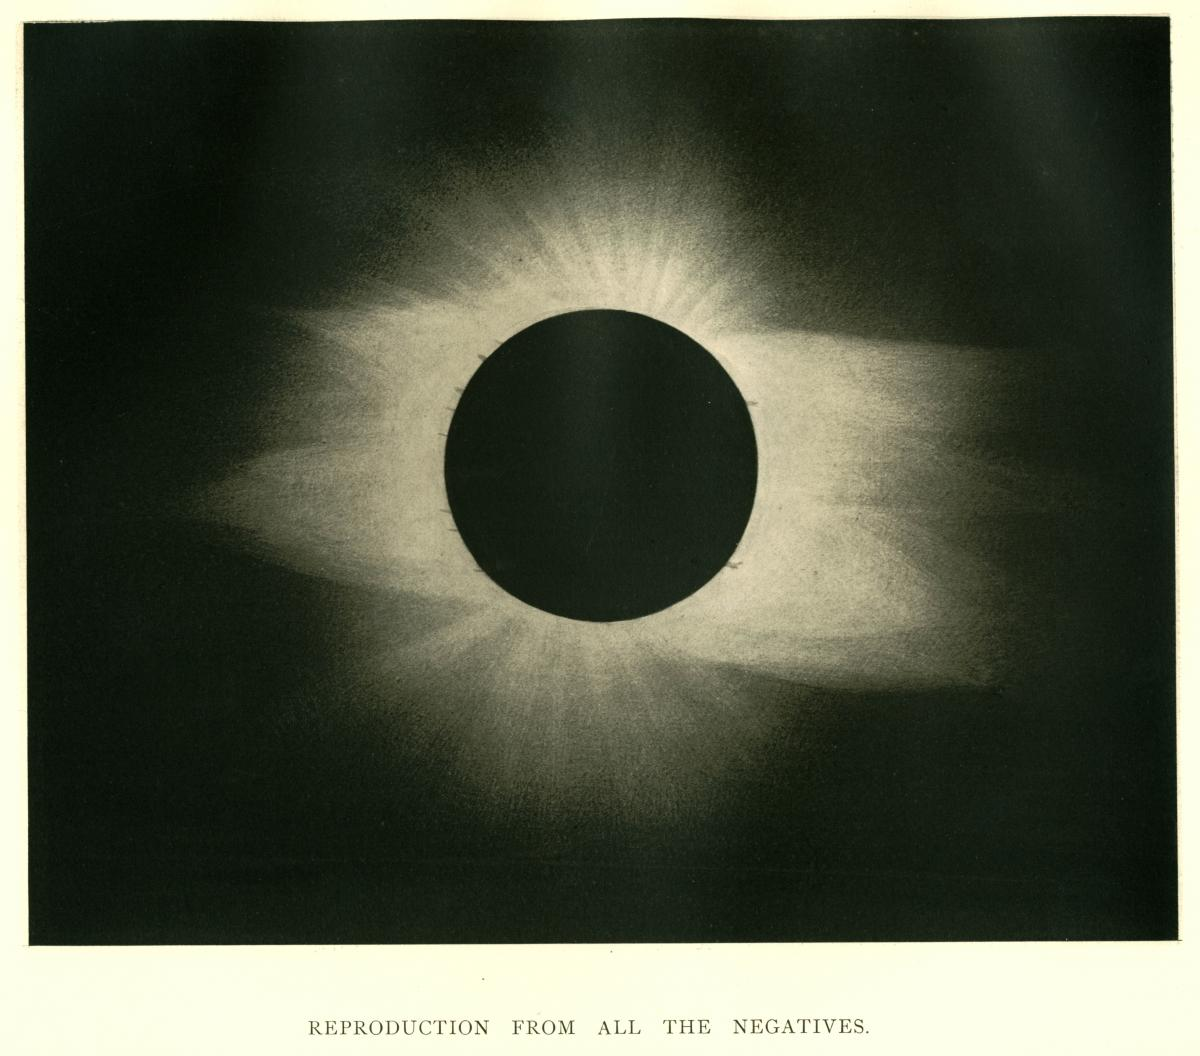 Photo of the 1889 total solar eclipse